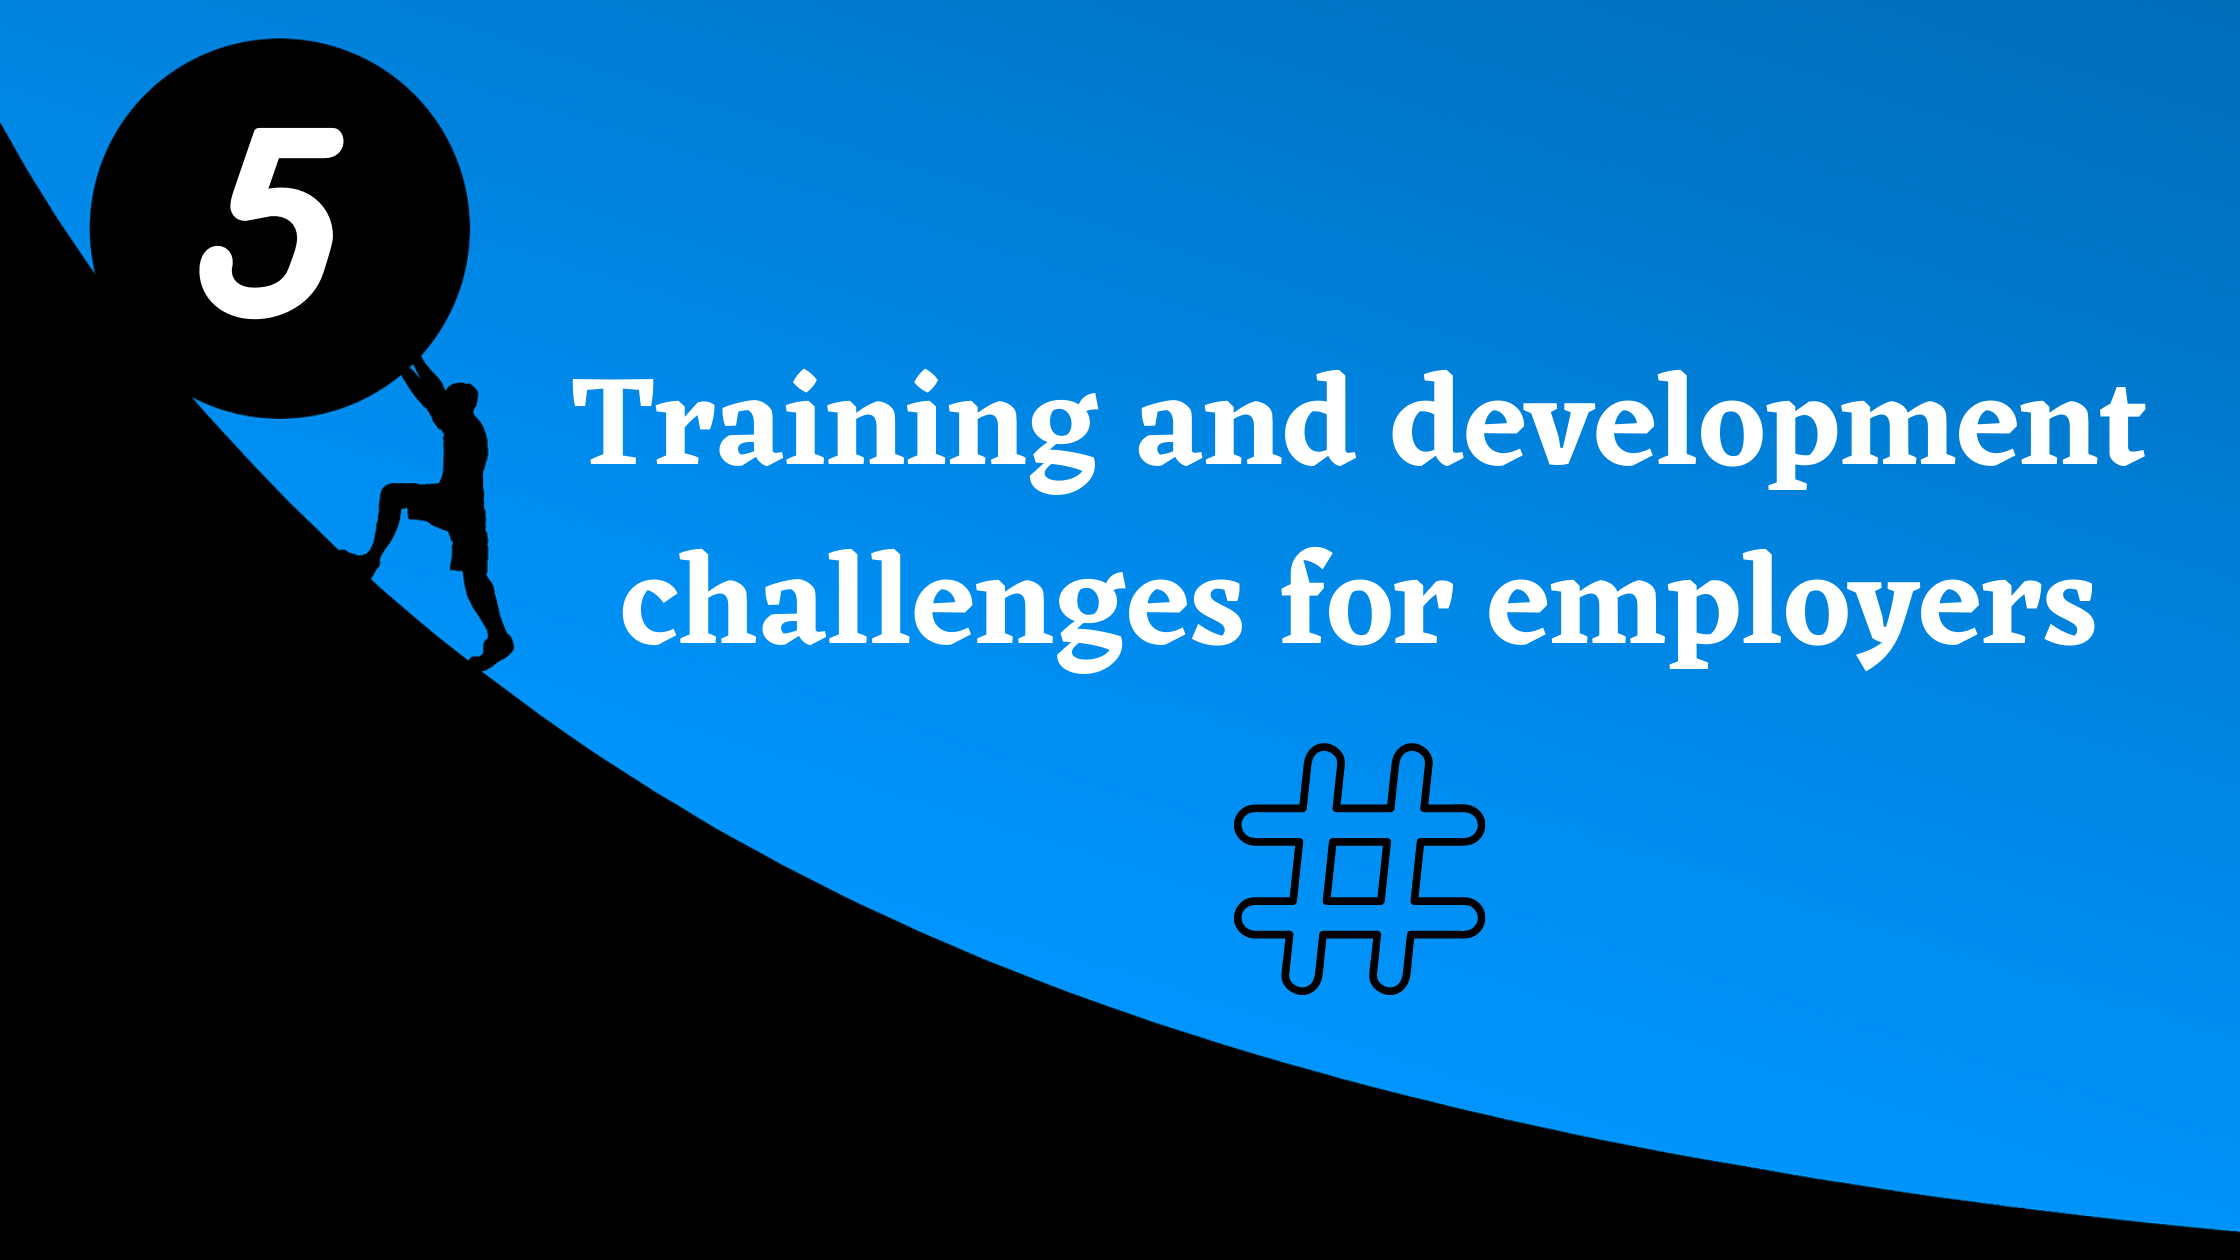 Training and development challenges for employers and ways to solve them